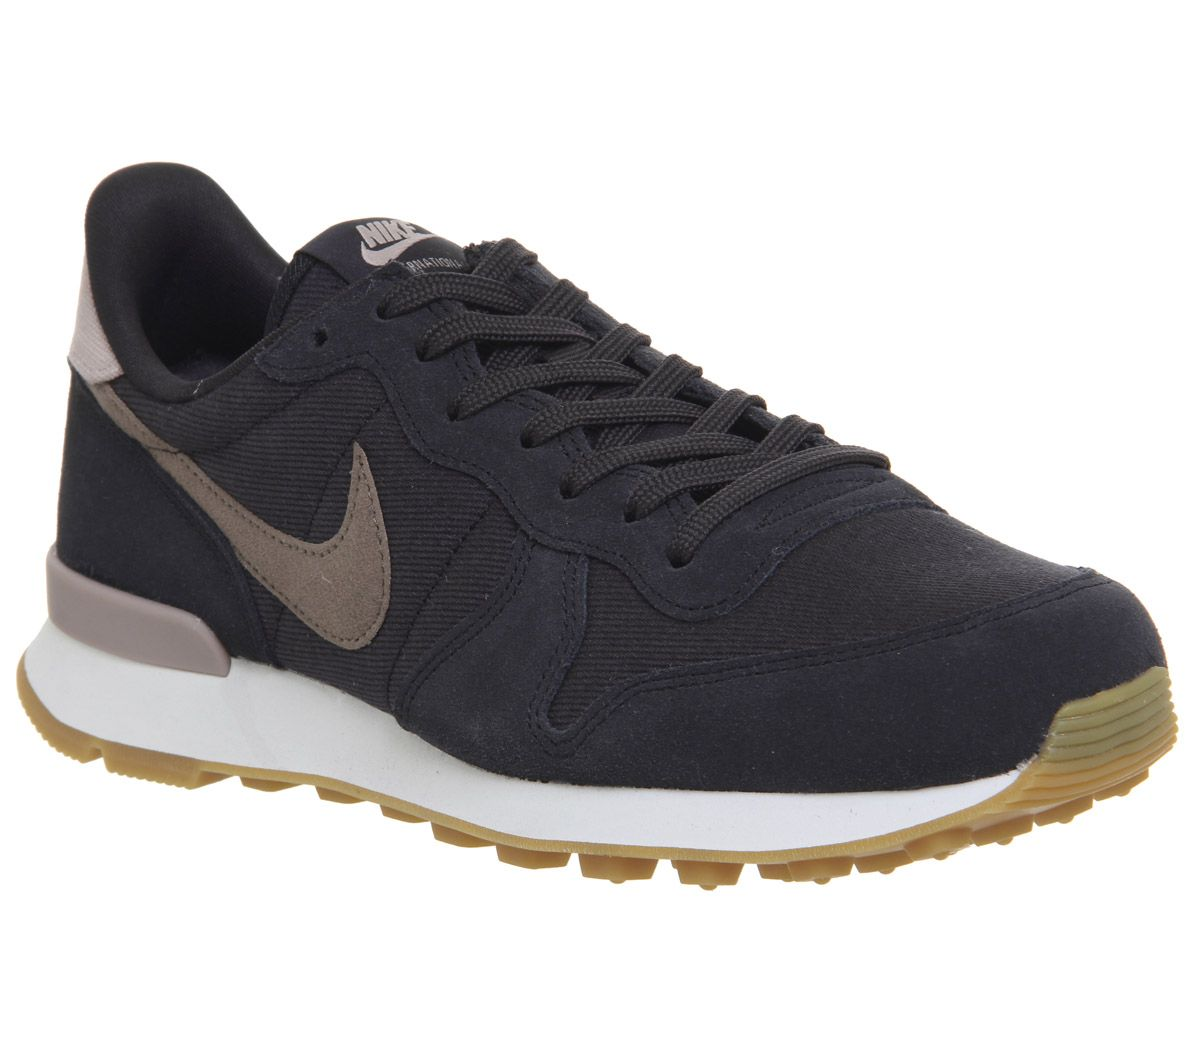 timeless design 674e3 9729b Nike Nike Internationalist Trainers Oil Grey Miuk Brown F - Hers ...